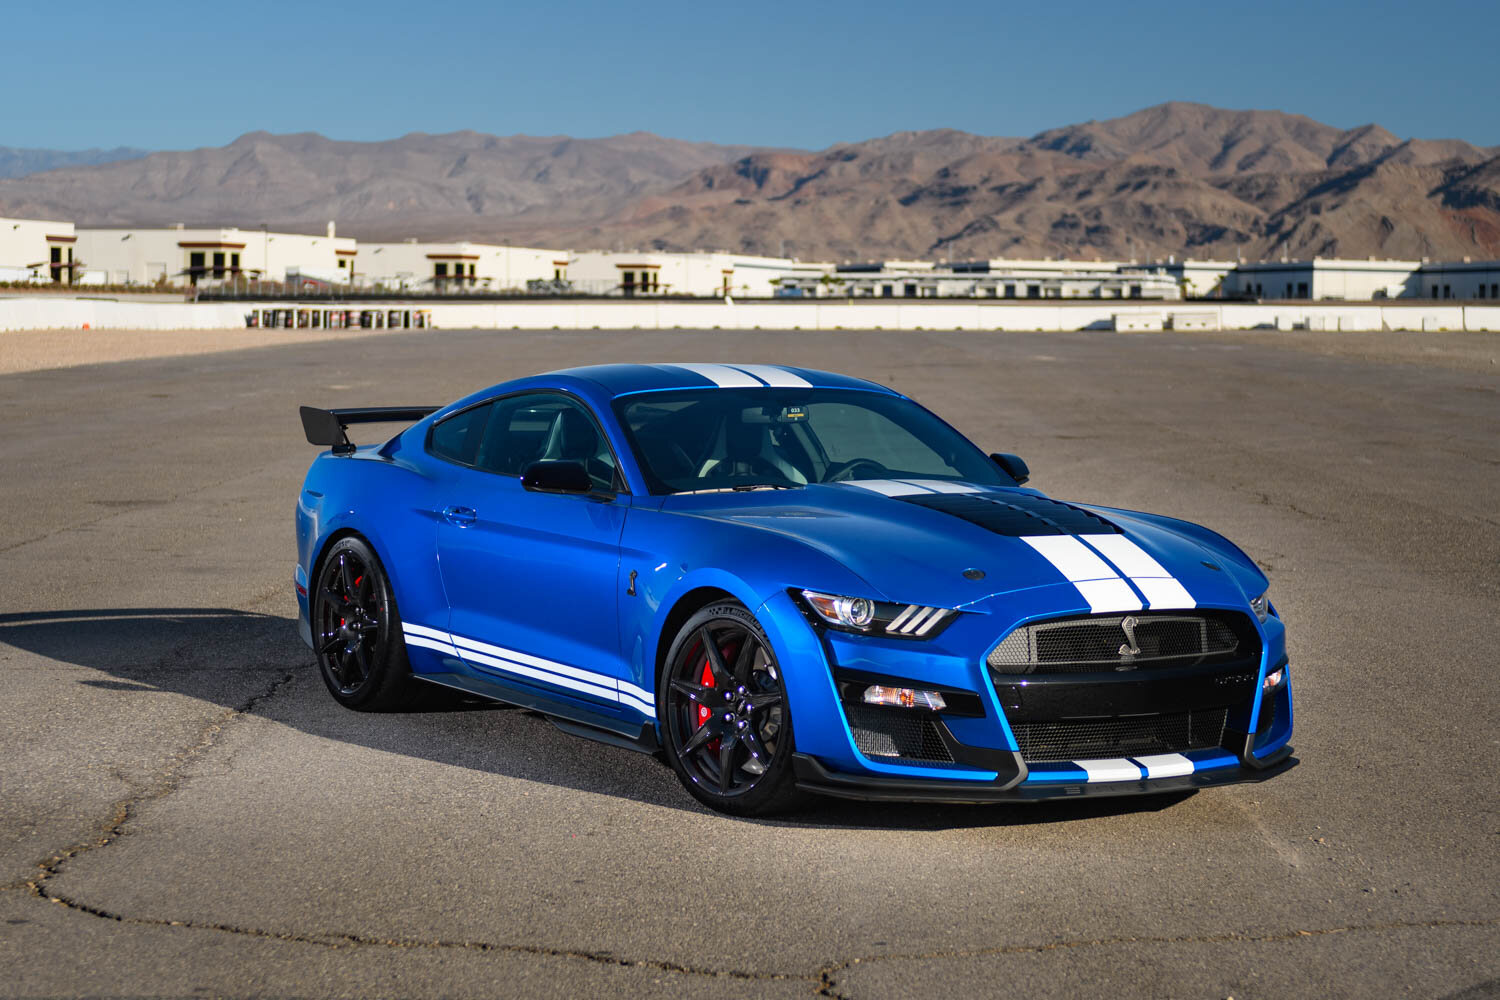 2020-ford-mustang-shelby-gt500-secrets-revealed-hagerty.jpg